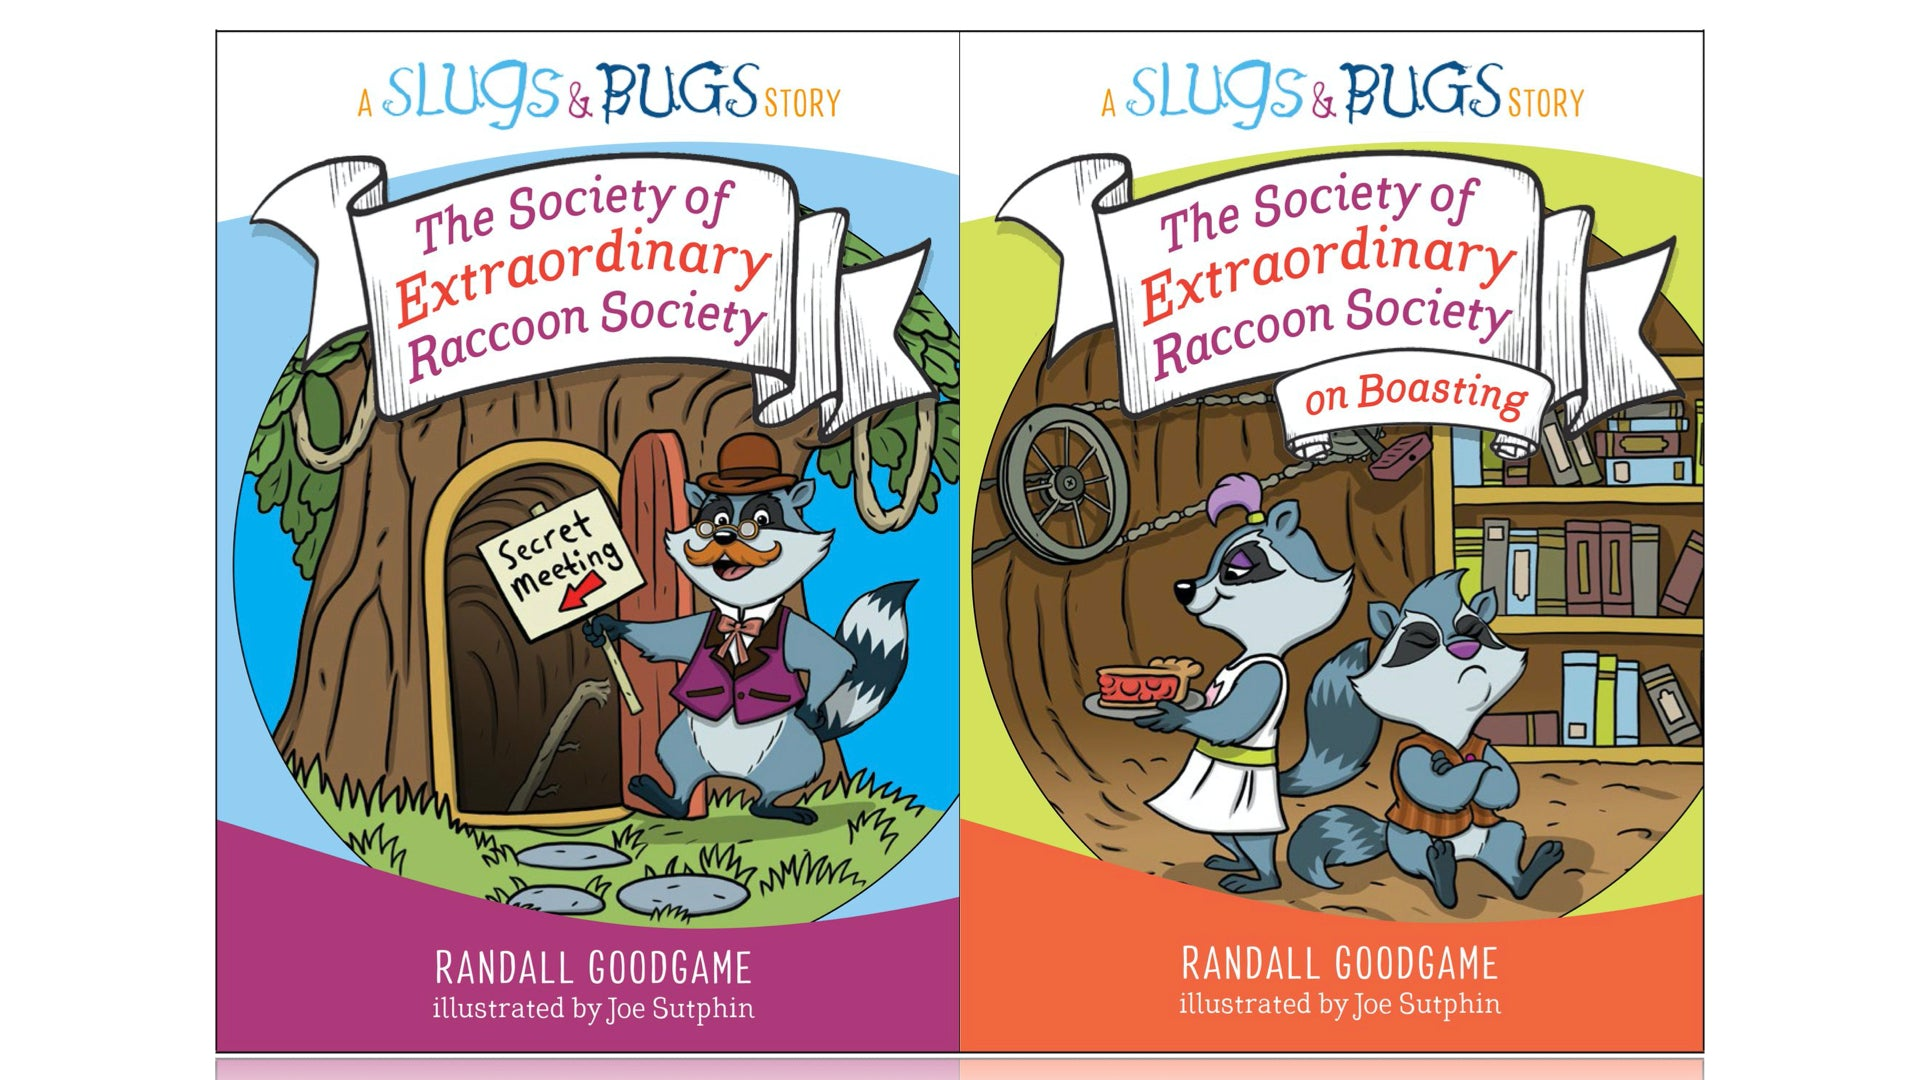 New Slugs & Bugs Books!